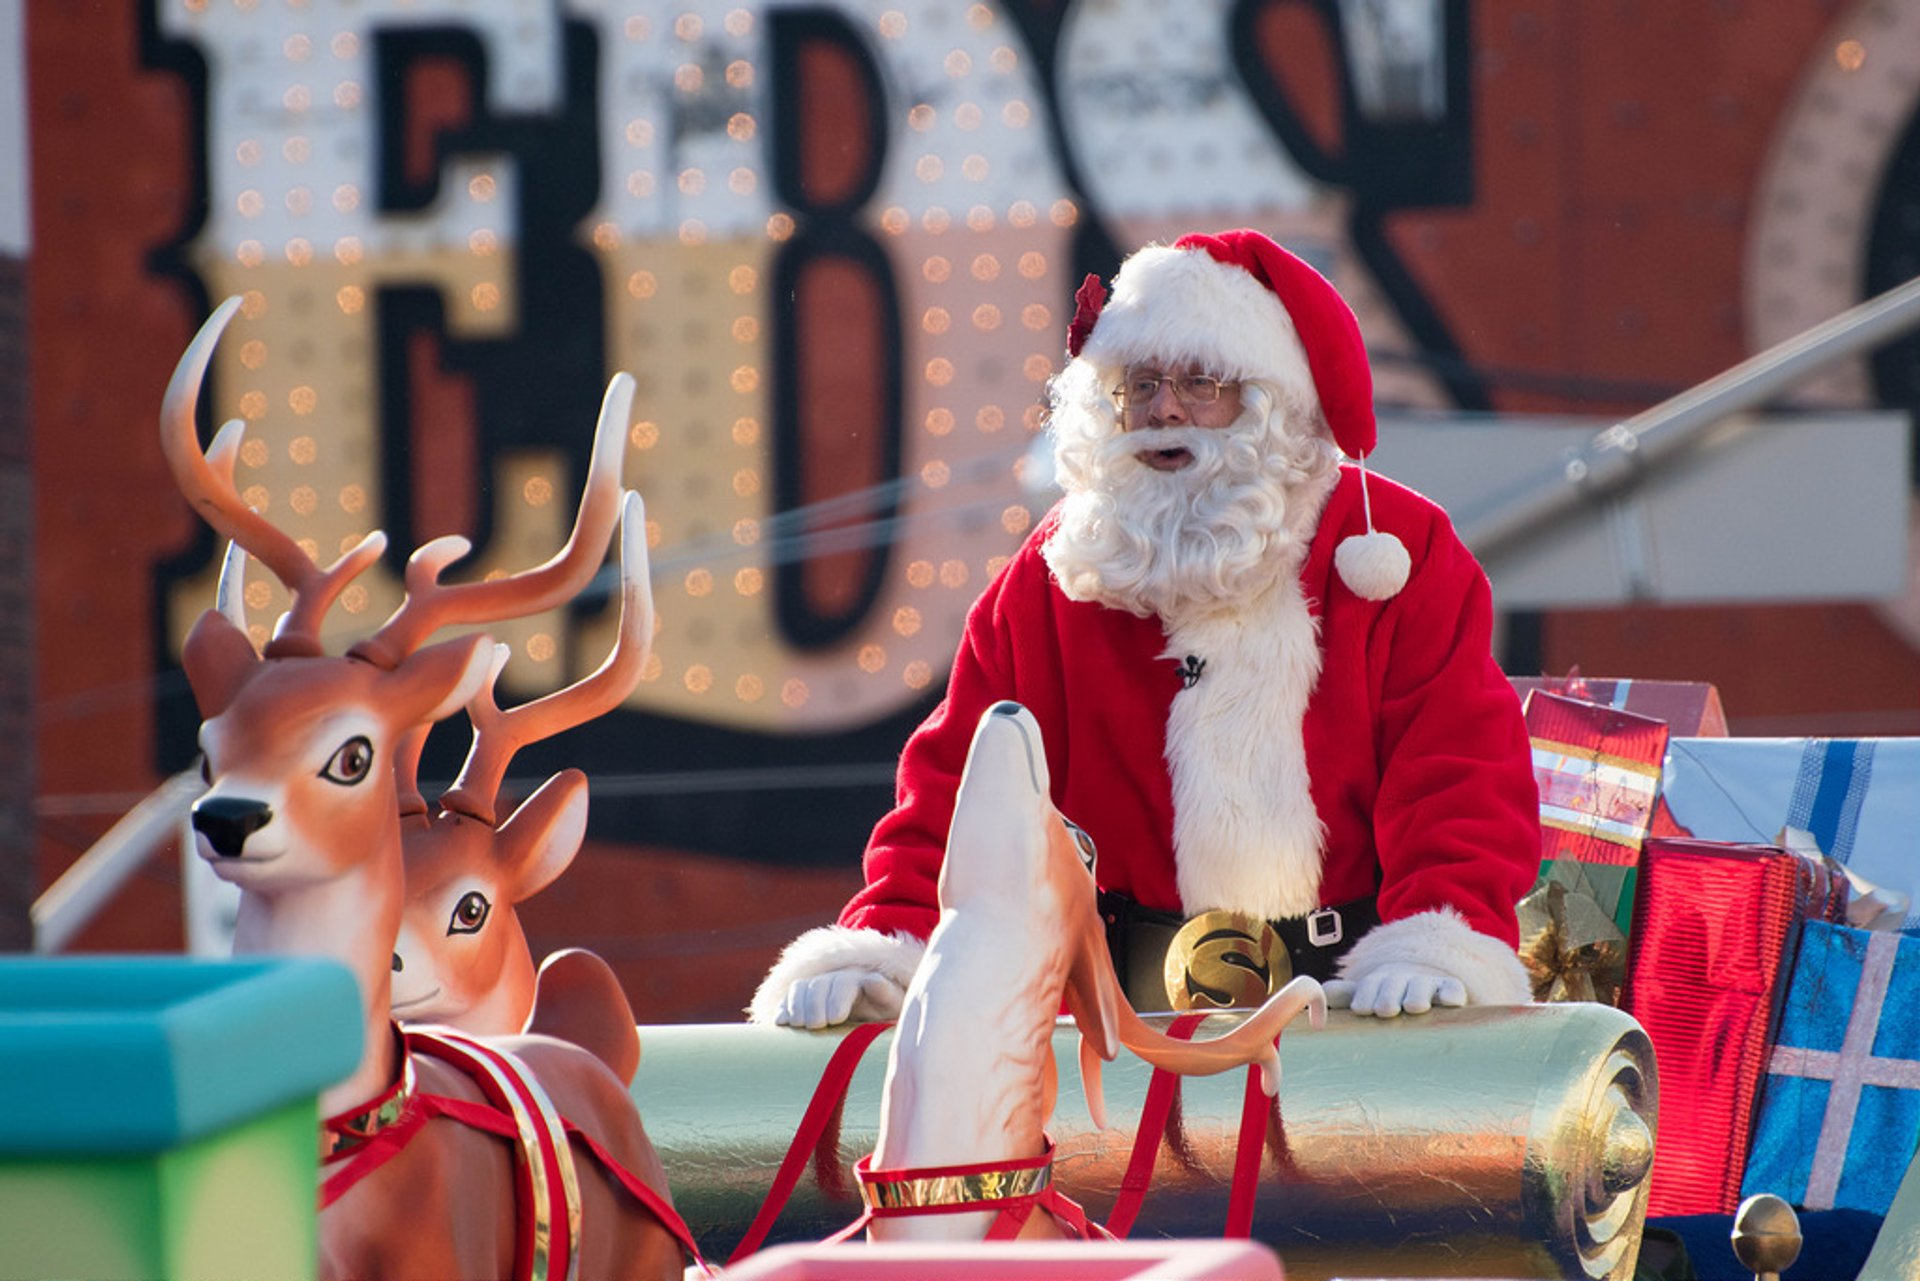 Santa Claus Parade in Toronto 2019 - Best Time